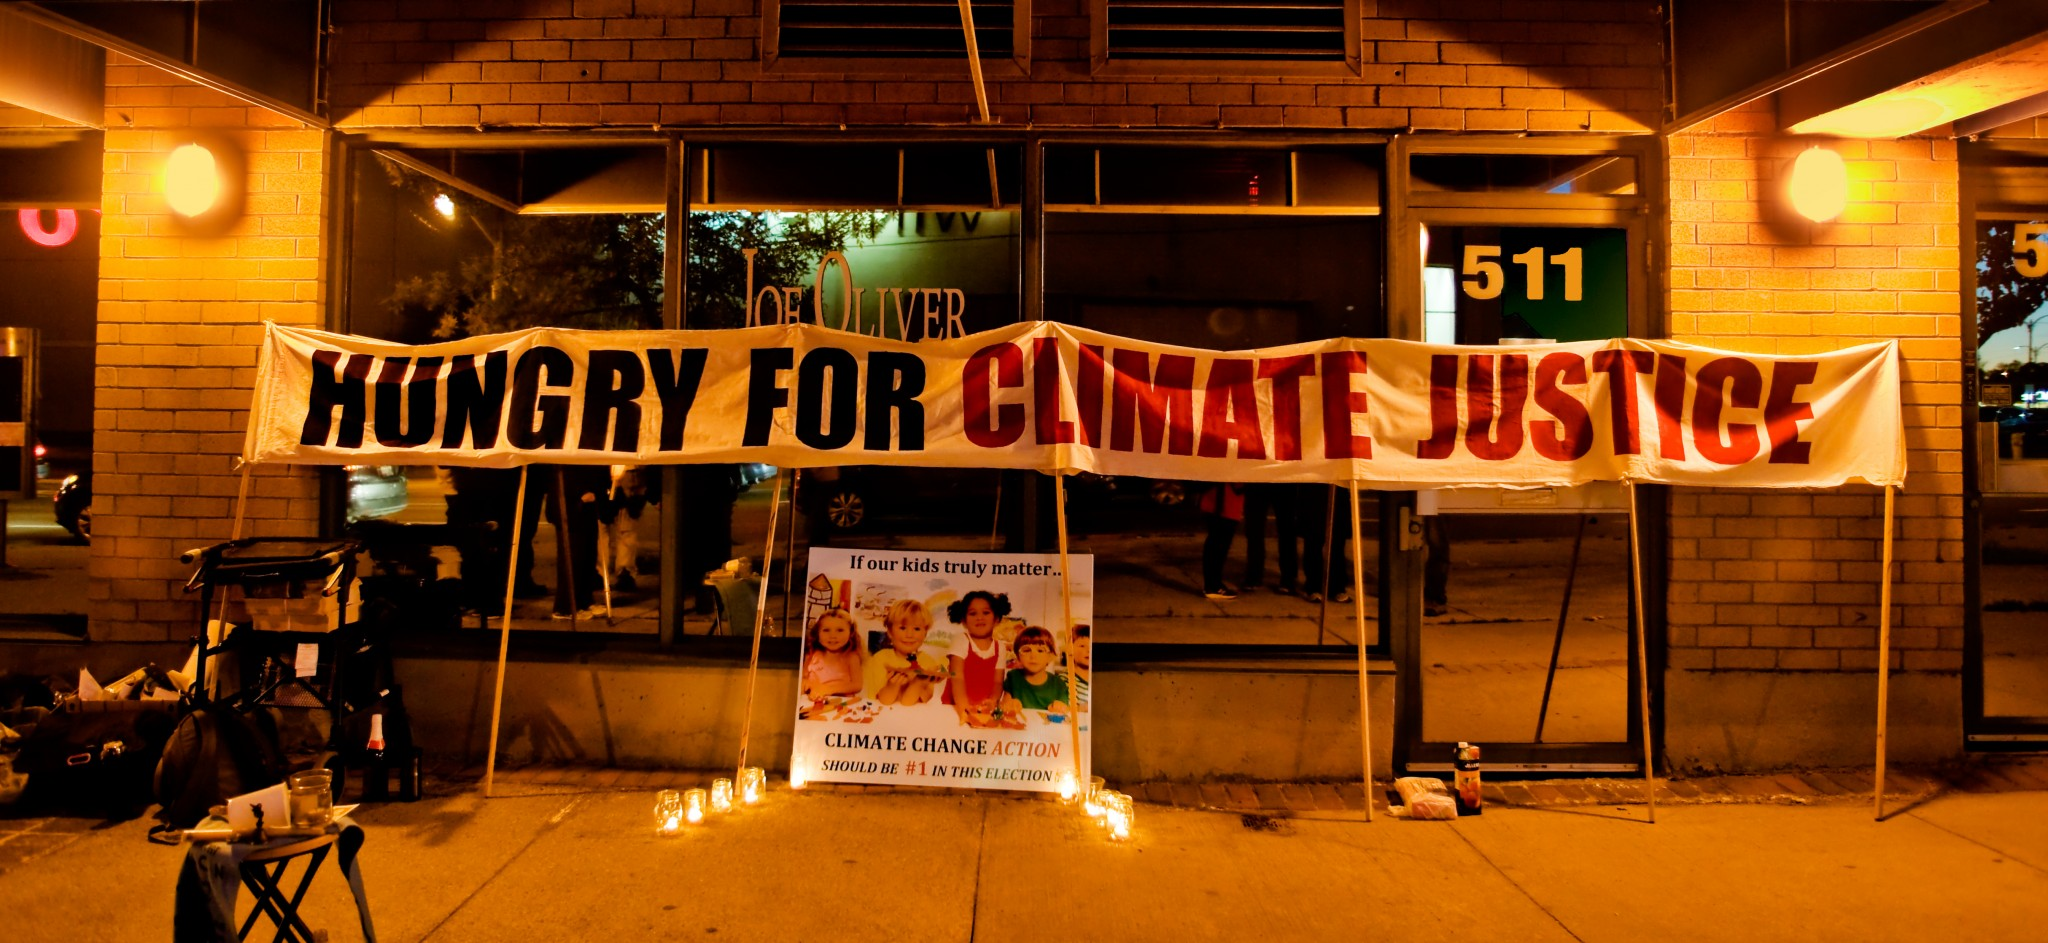 hungry-for-climate-justice-Oct1-2015